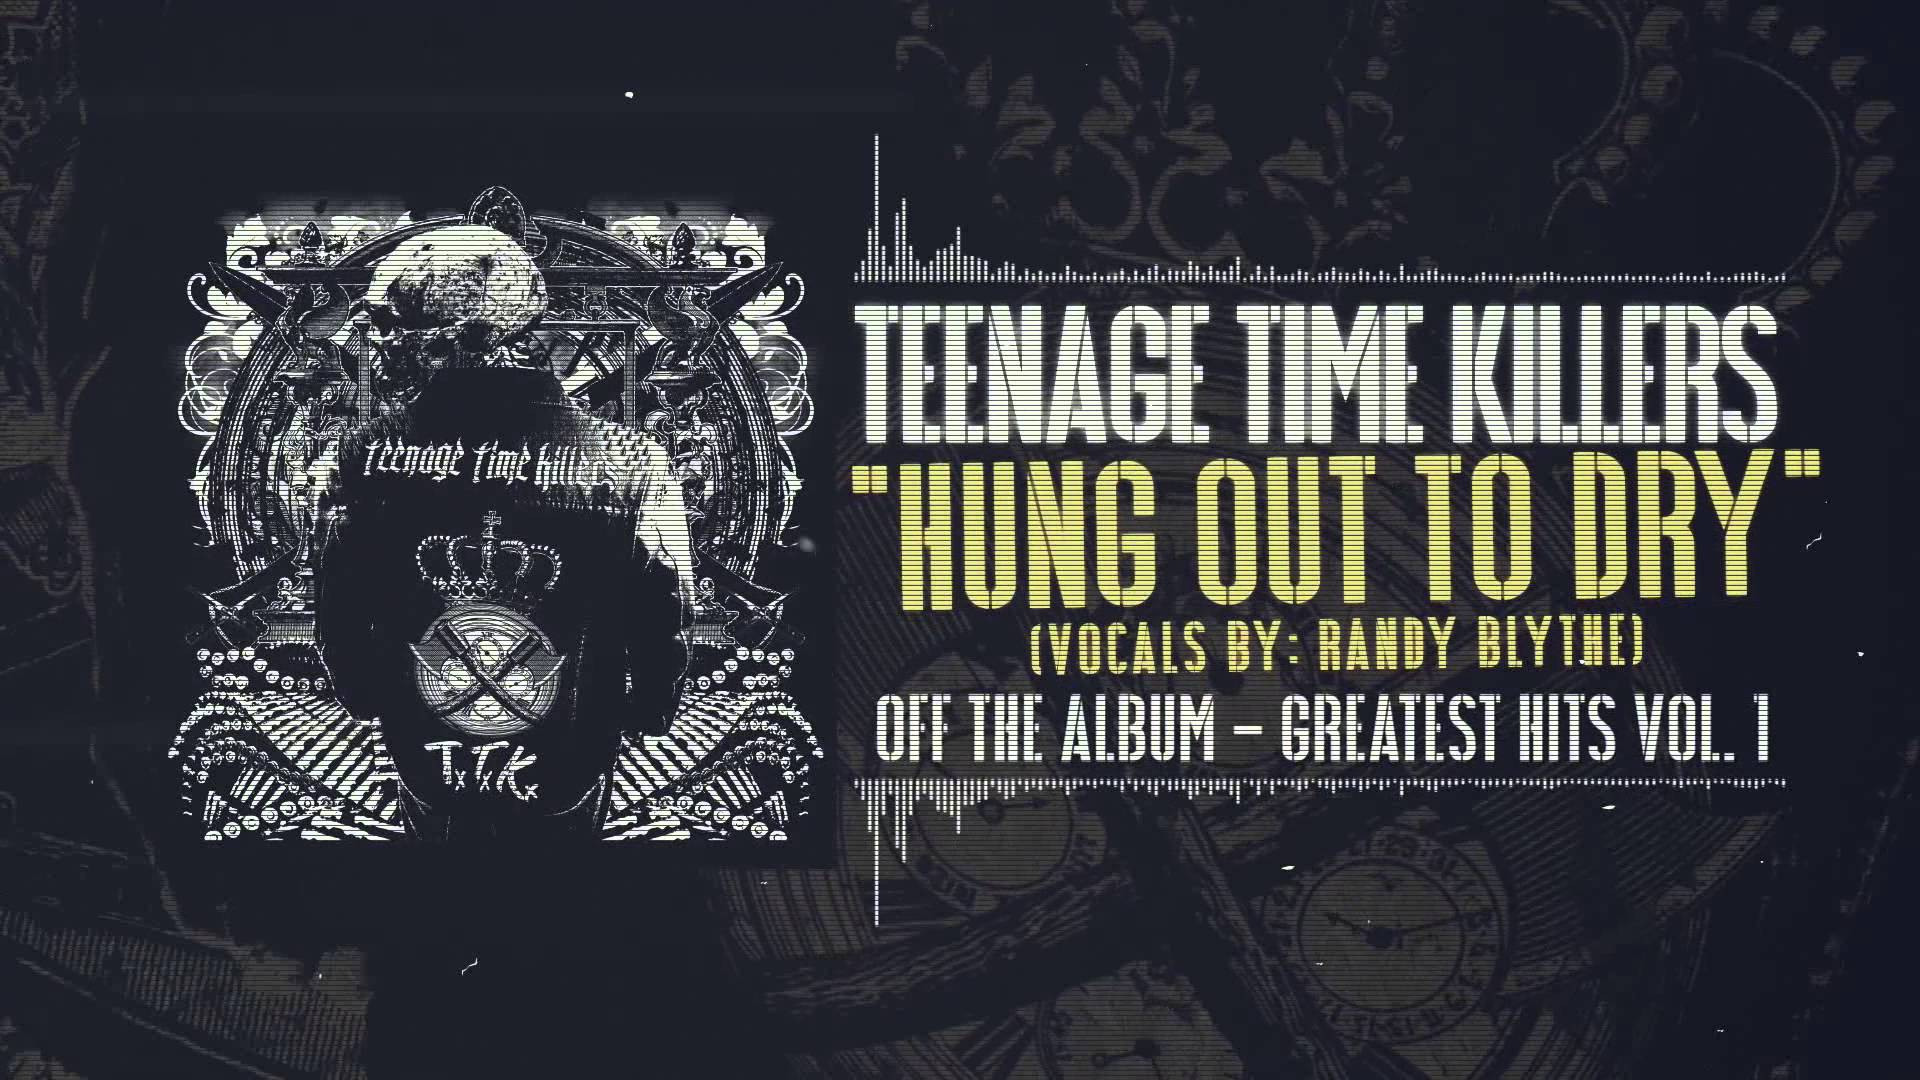 Foo Fighters, Slipknot and more team up for Teenage Time Killers - AXS